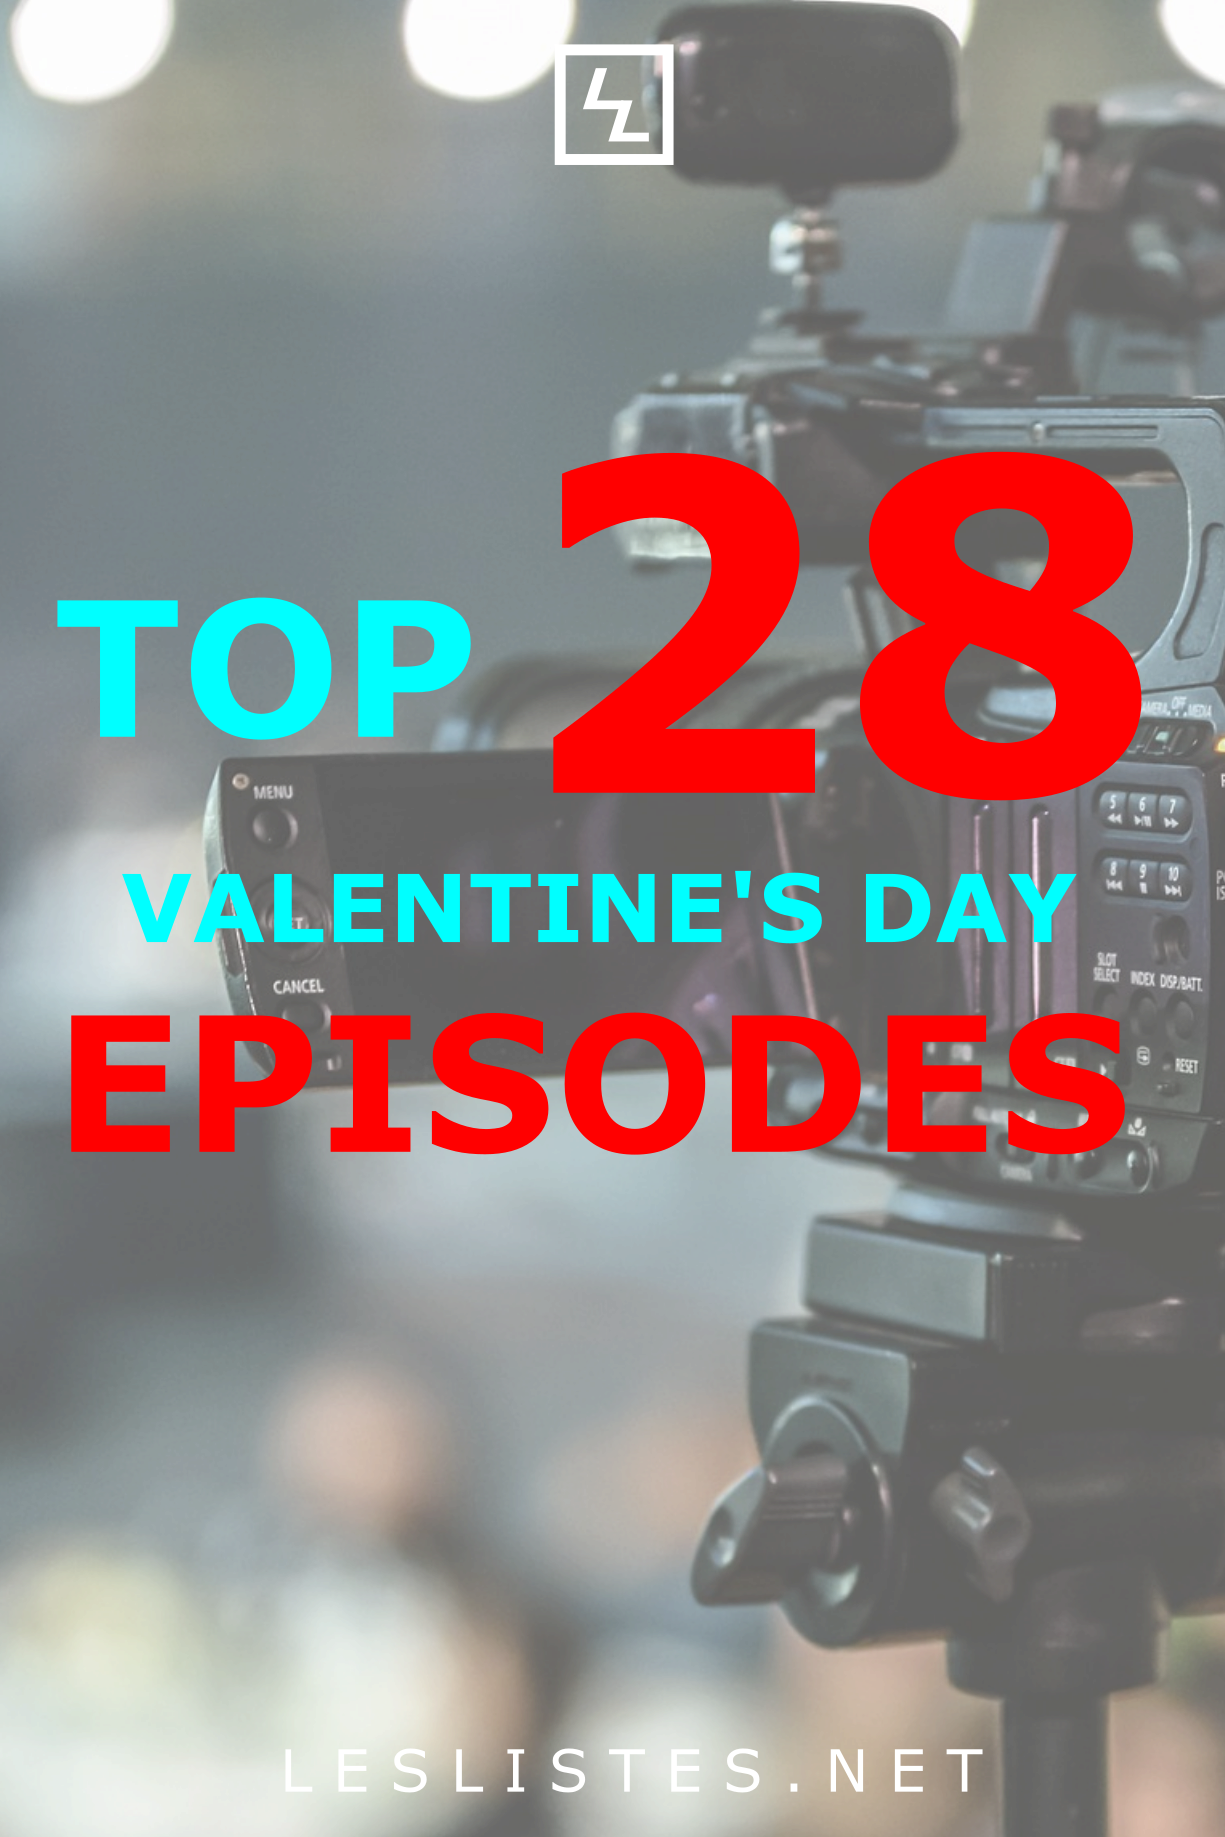 Valentine S Day Can Be Pretty Stressful One Way To Help Is To Watch Tv Check Out The Top 28 Valentines Day Epi Silly Love Songs Favorite Tv Shows Silly Jokes